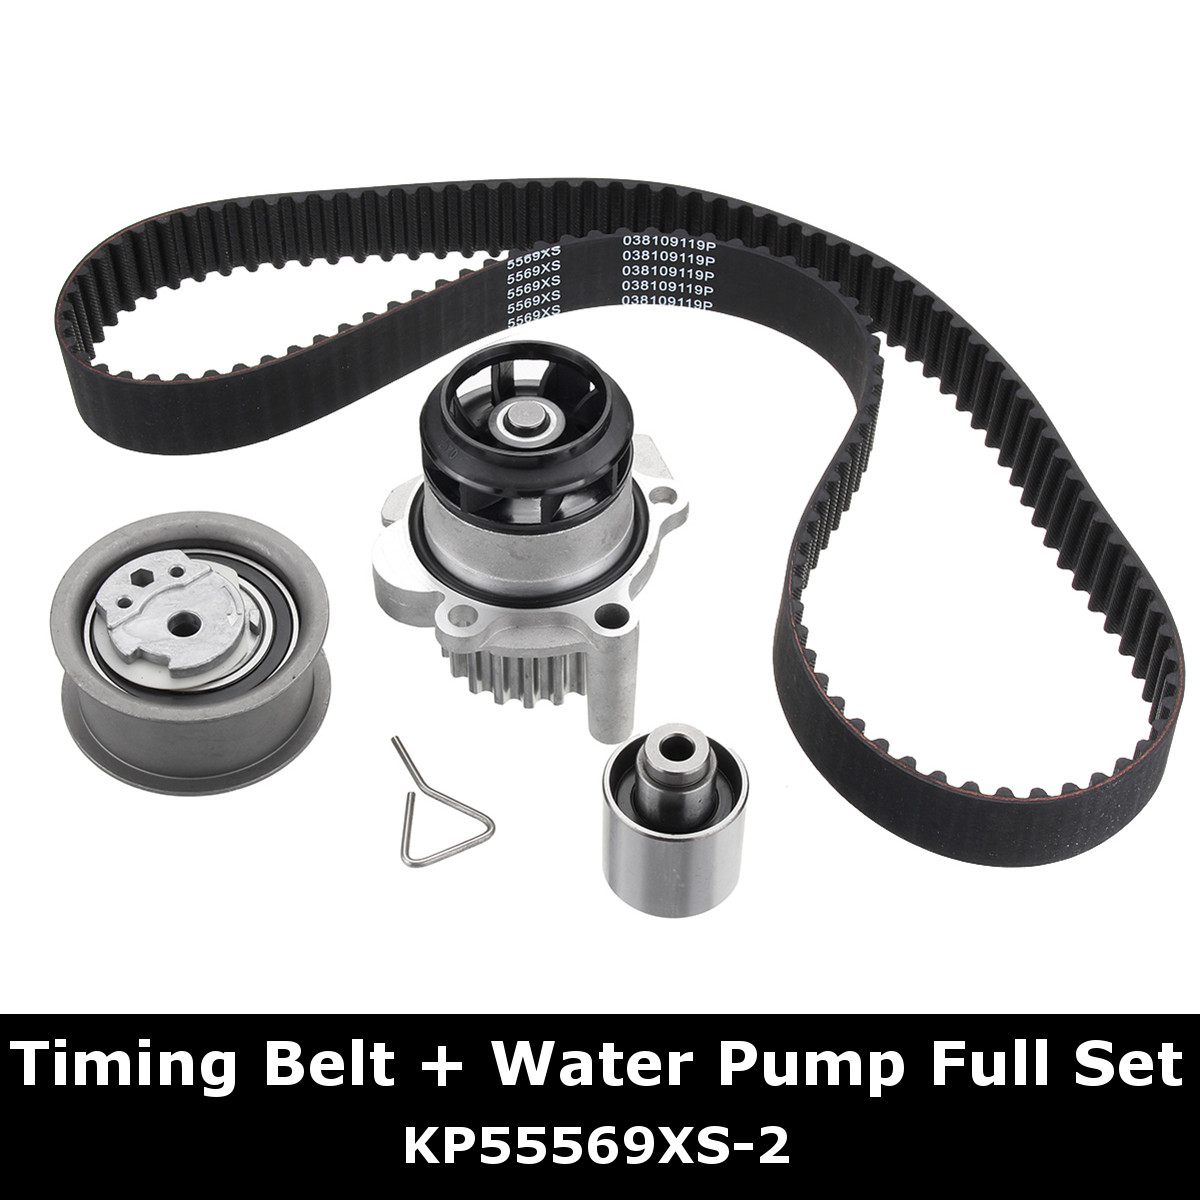 Timing Belt Kit Water Pump Set for AUDI A2 - A3 8P for VW Golf Passat SEAT 1.4 1.9 TDI for SKODA free ship turbo k03 29 53039700029 53039880029 058145703j n058145703c for audi a4 a6 vw passat 1 8t amg awm atw aug bfb aeb 1 8l